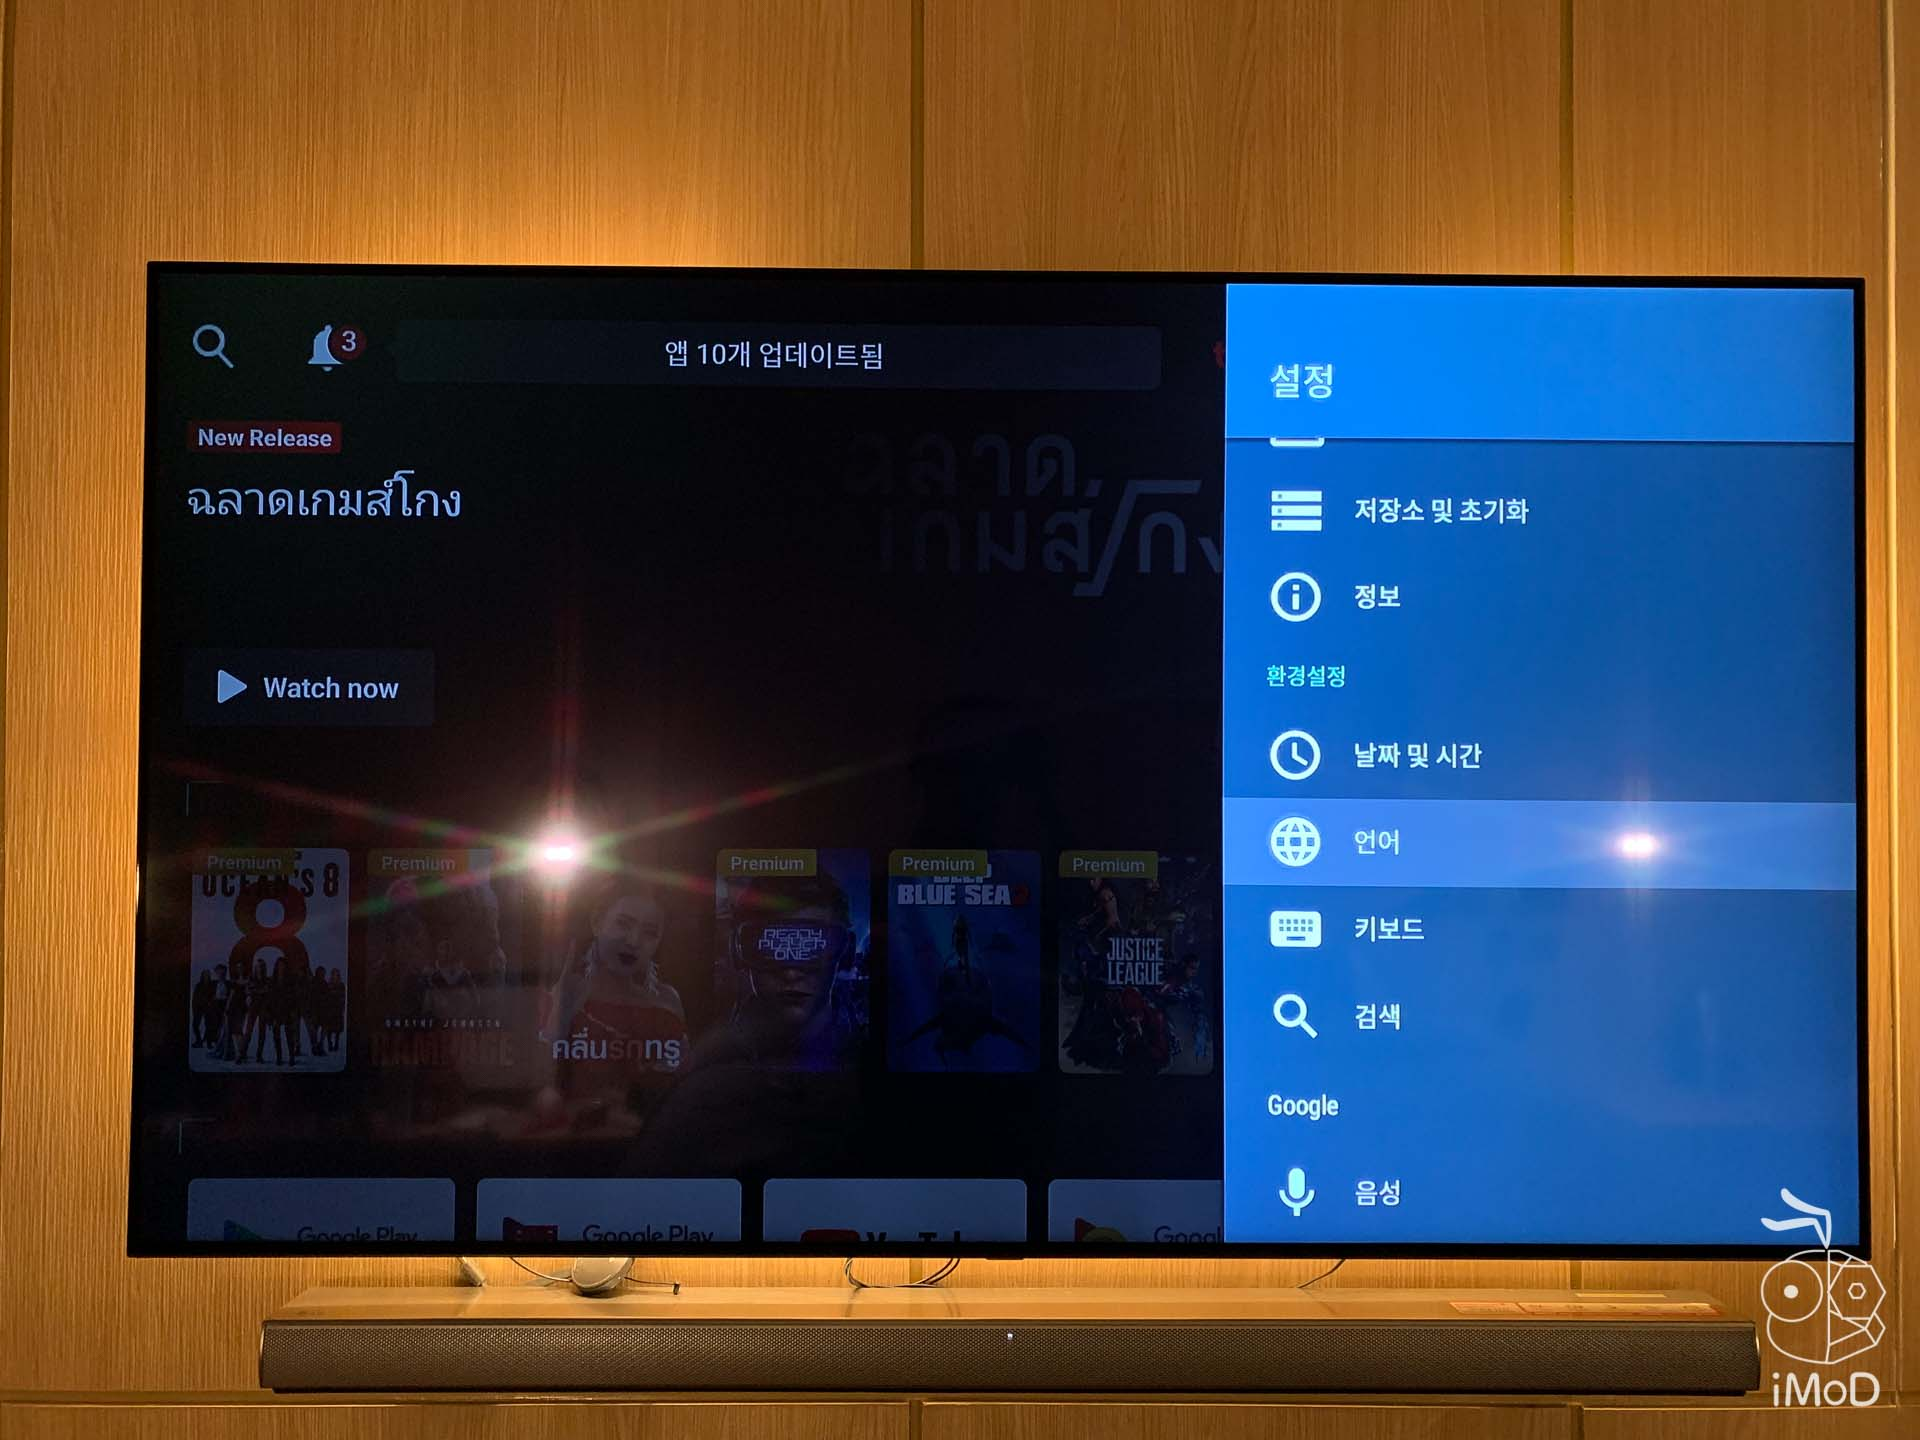 Trueid Tv กล่อง Android Tv รุ่น 2 Review 7185